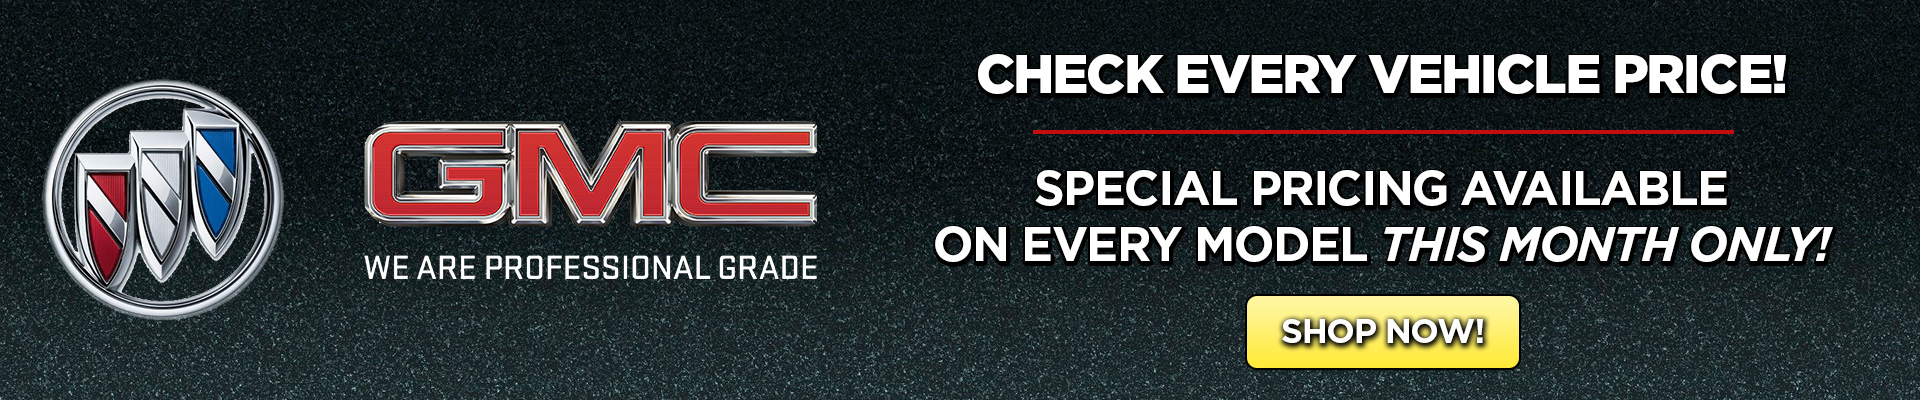 GMC Special Pricing Available